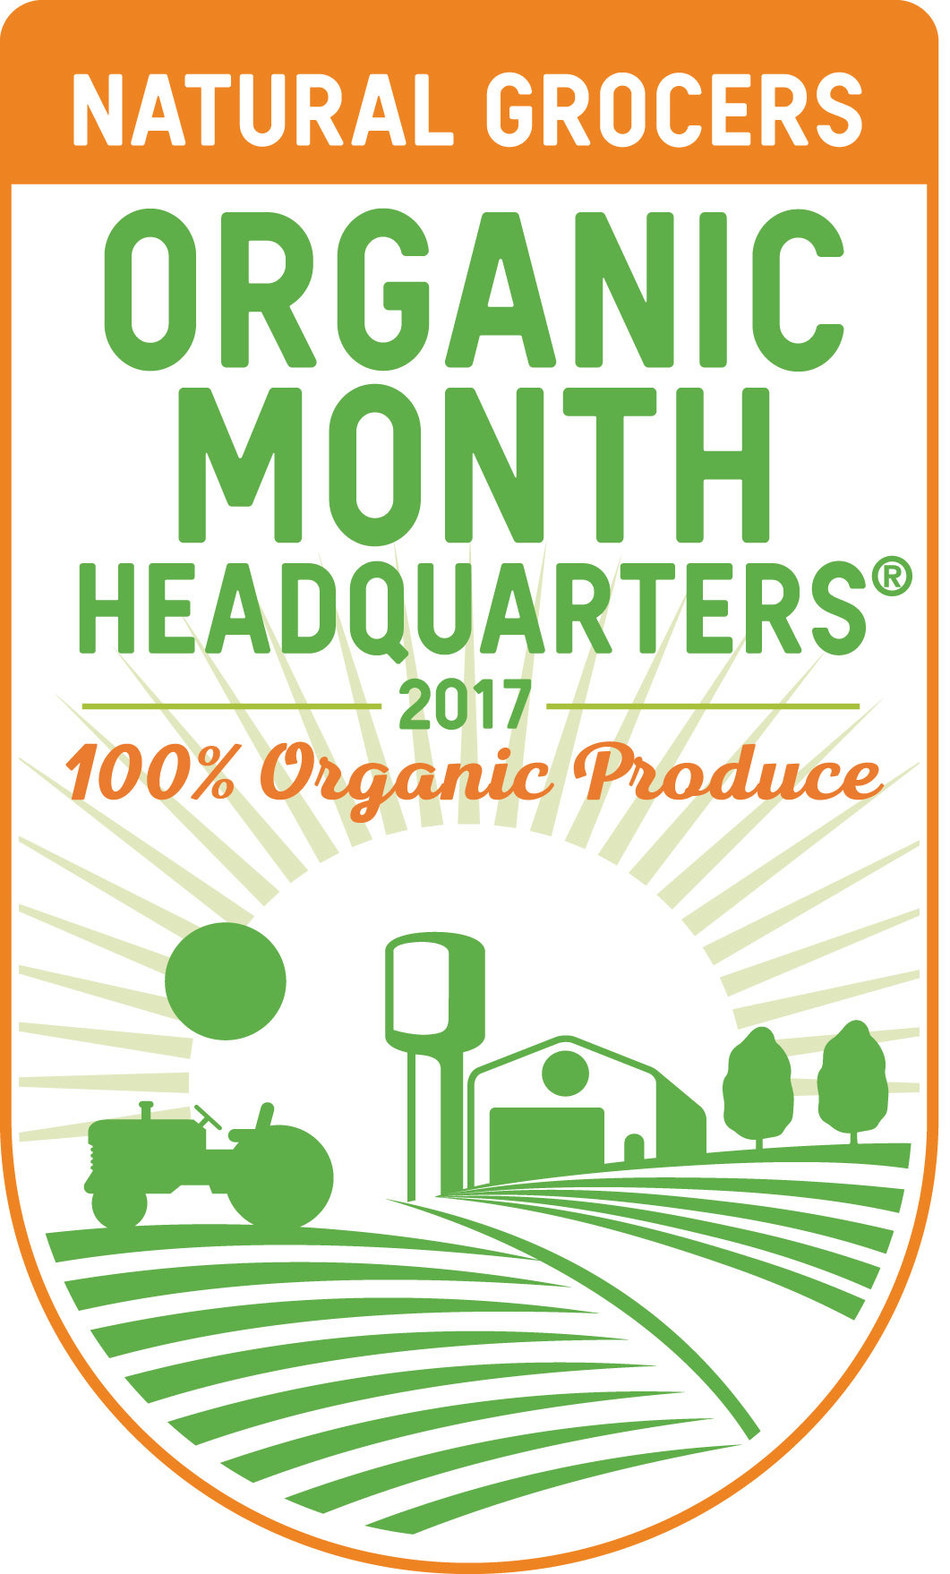 """In 2016, Natural Grocers coined the title of """"Organic Headquarters"""" to celebrate the company's long history of selling only organically grown produce. (PRNewsfoto/Natural Grocers by Vitamin...)"""